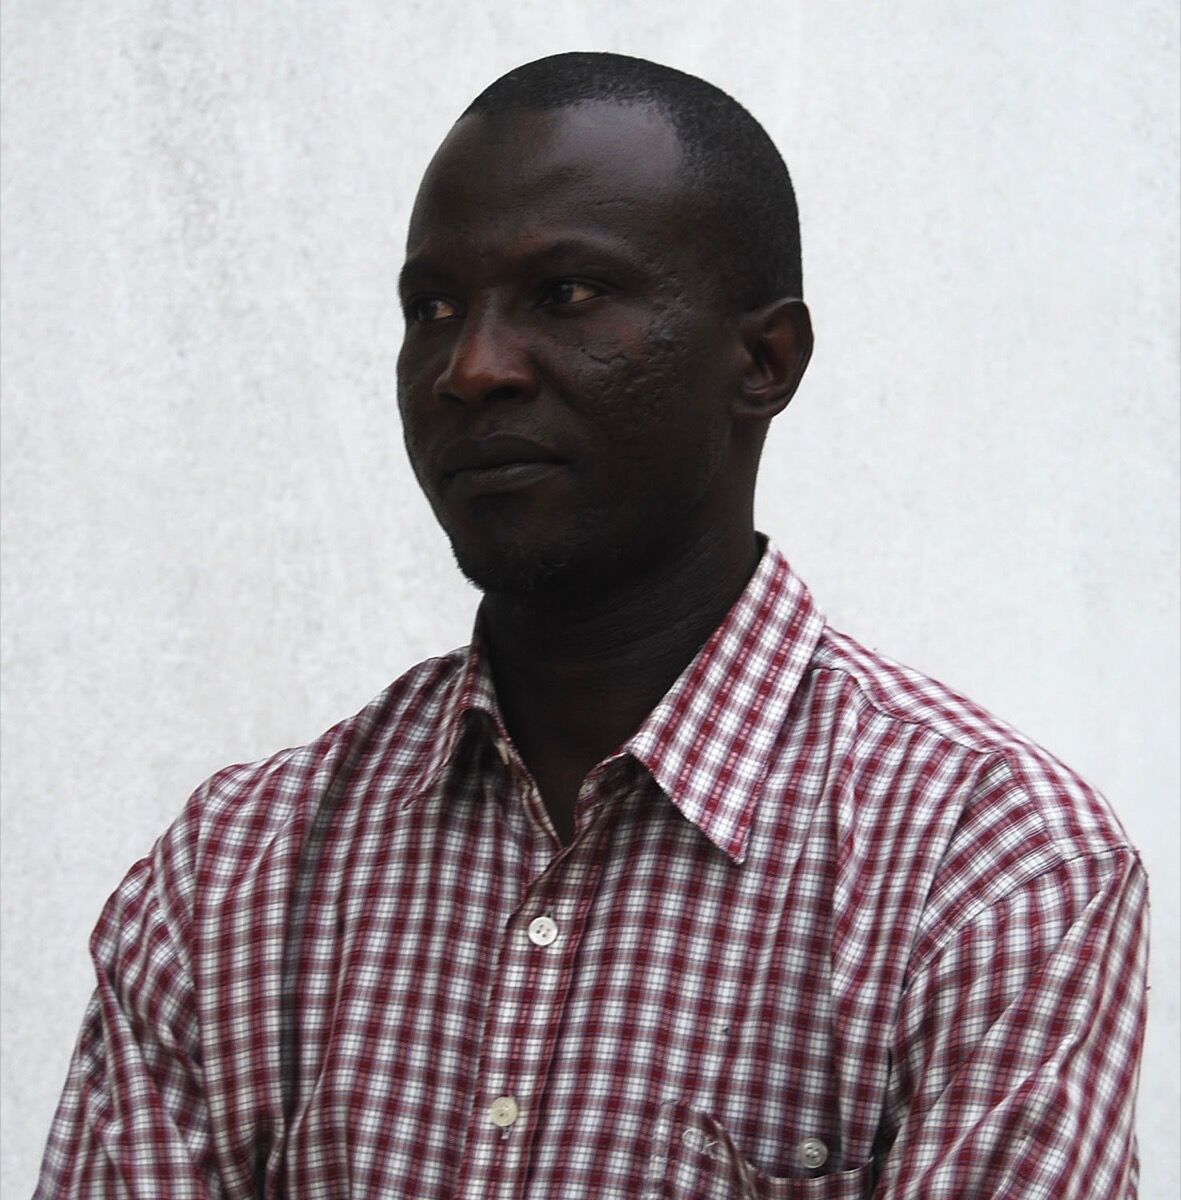 Portrait of Kassou Seydou. Courtesy of Galerie Cécile Fakhoury.